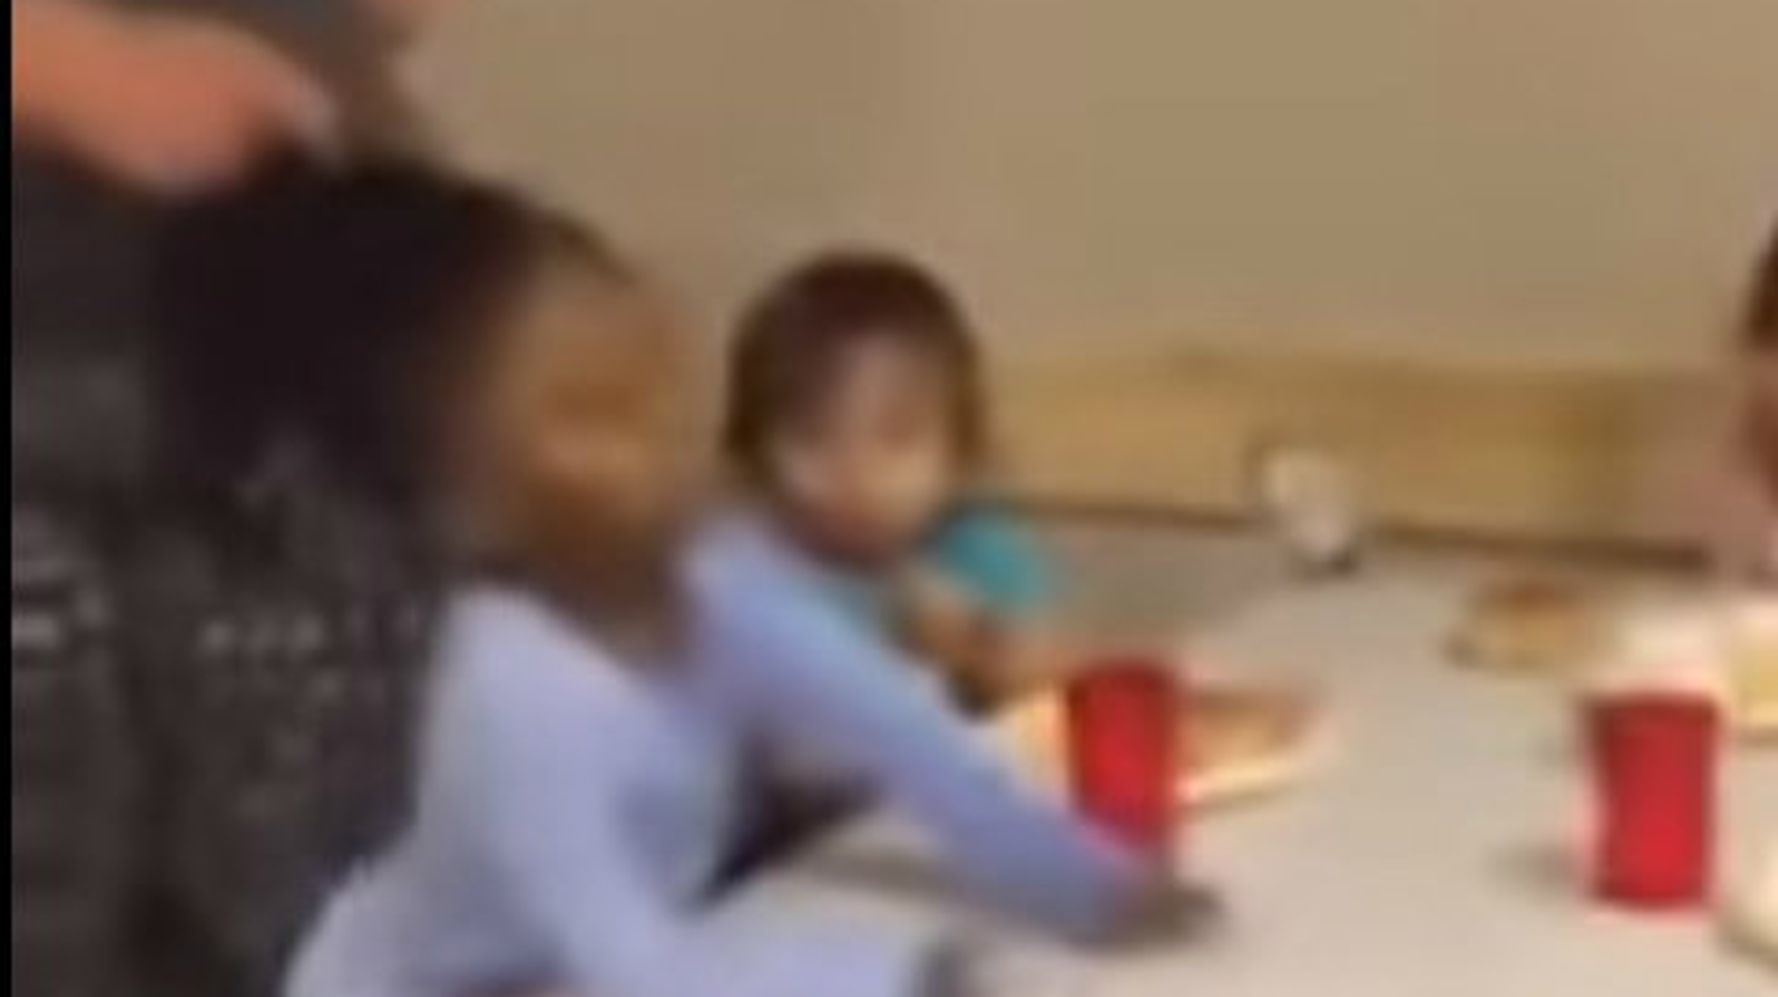 Video Of Daycare Worker Pulling Black Girl's Hair Sparks